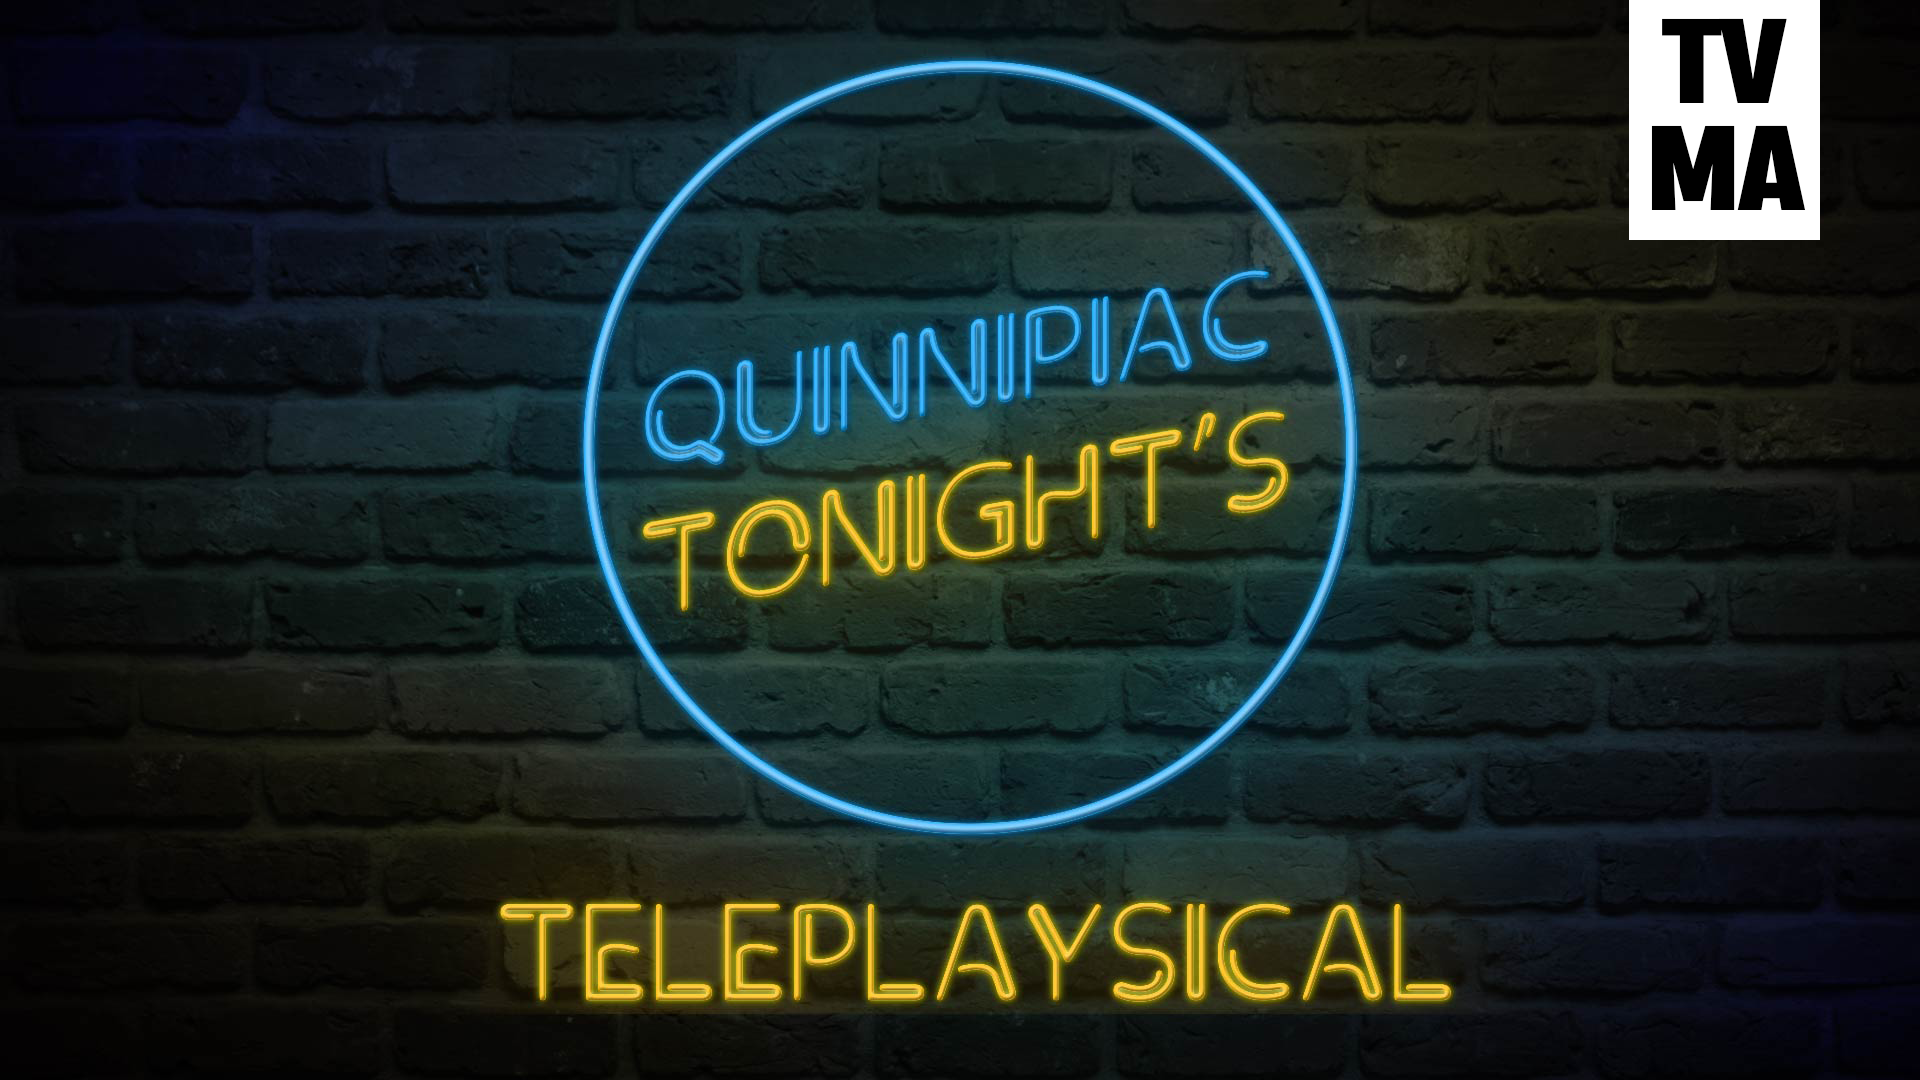 Quinnipiac Tonight: TELEPLAYSICAL! S4:E12